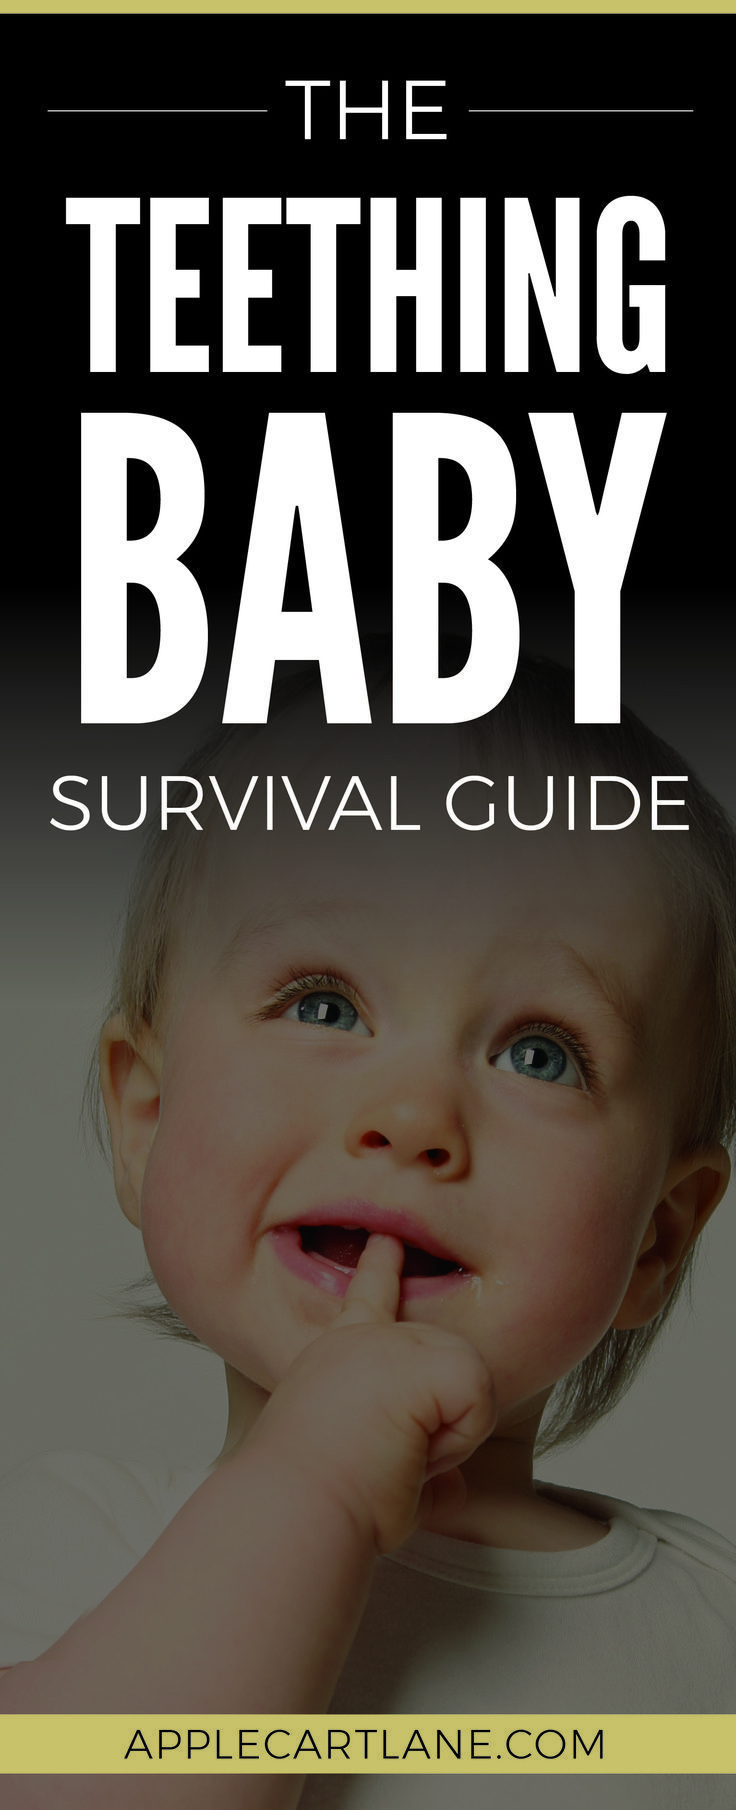 A child teething: survival instruction for parents